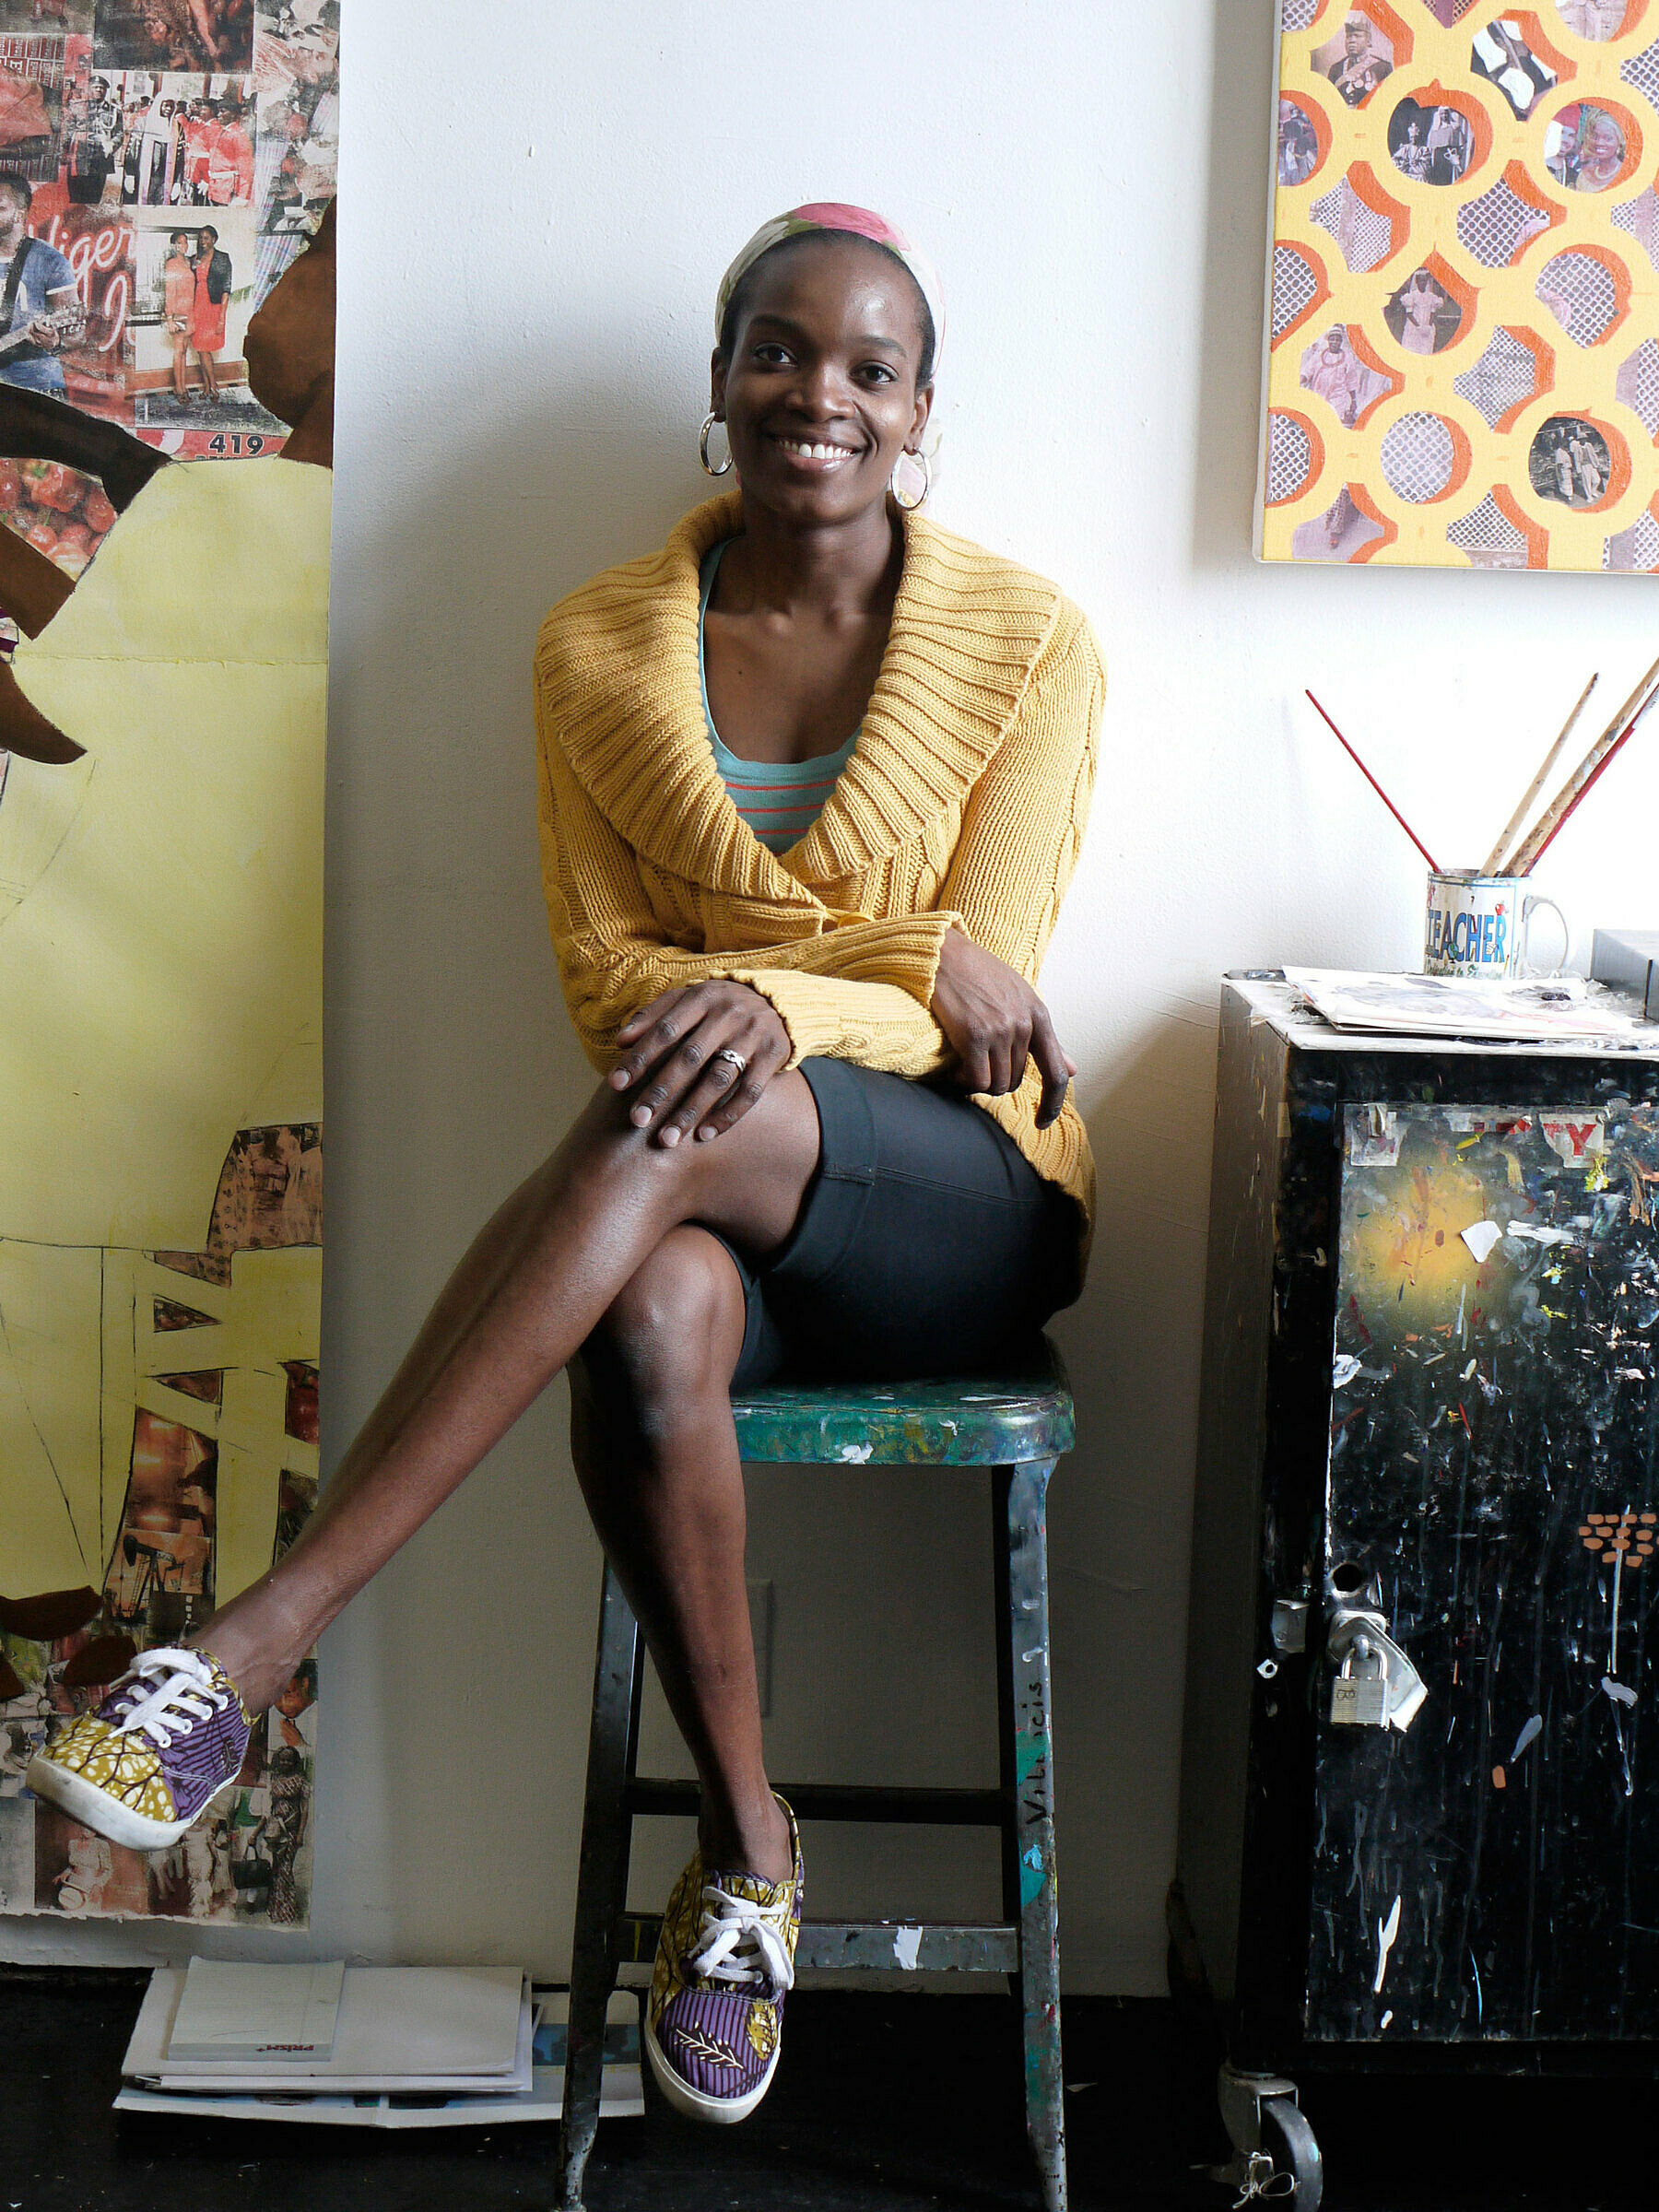 Artist Njideka Akunyili Crosby sits upon a stool in her studio. Two of the artists works are installed on the walls behind her